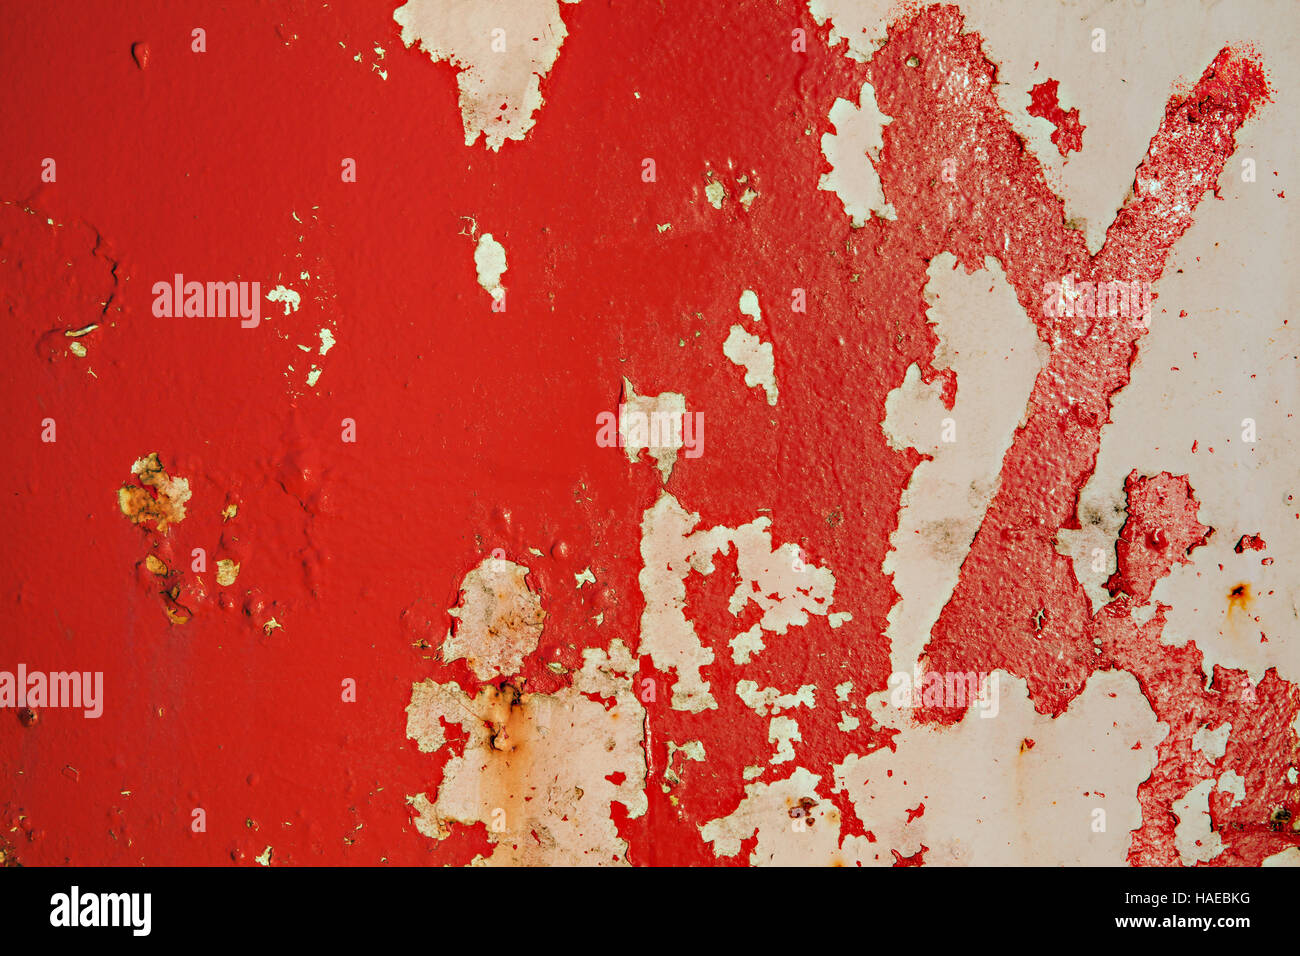 Textured red metal grunge background with peeling distressed paint rust and decay - Stock Image